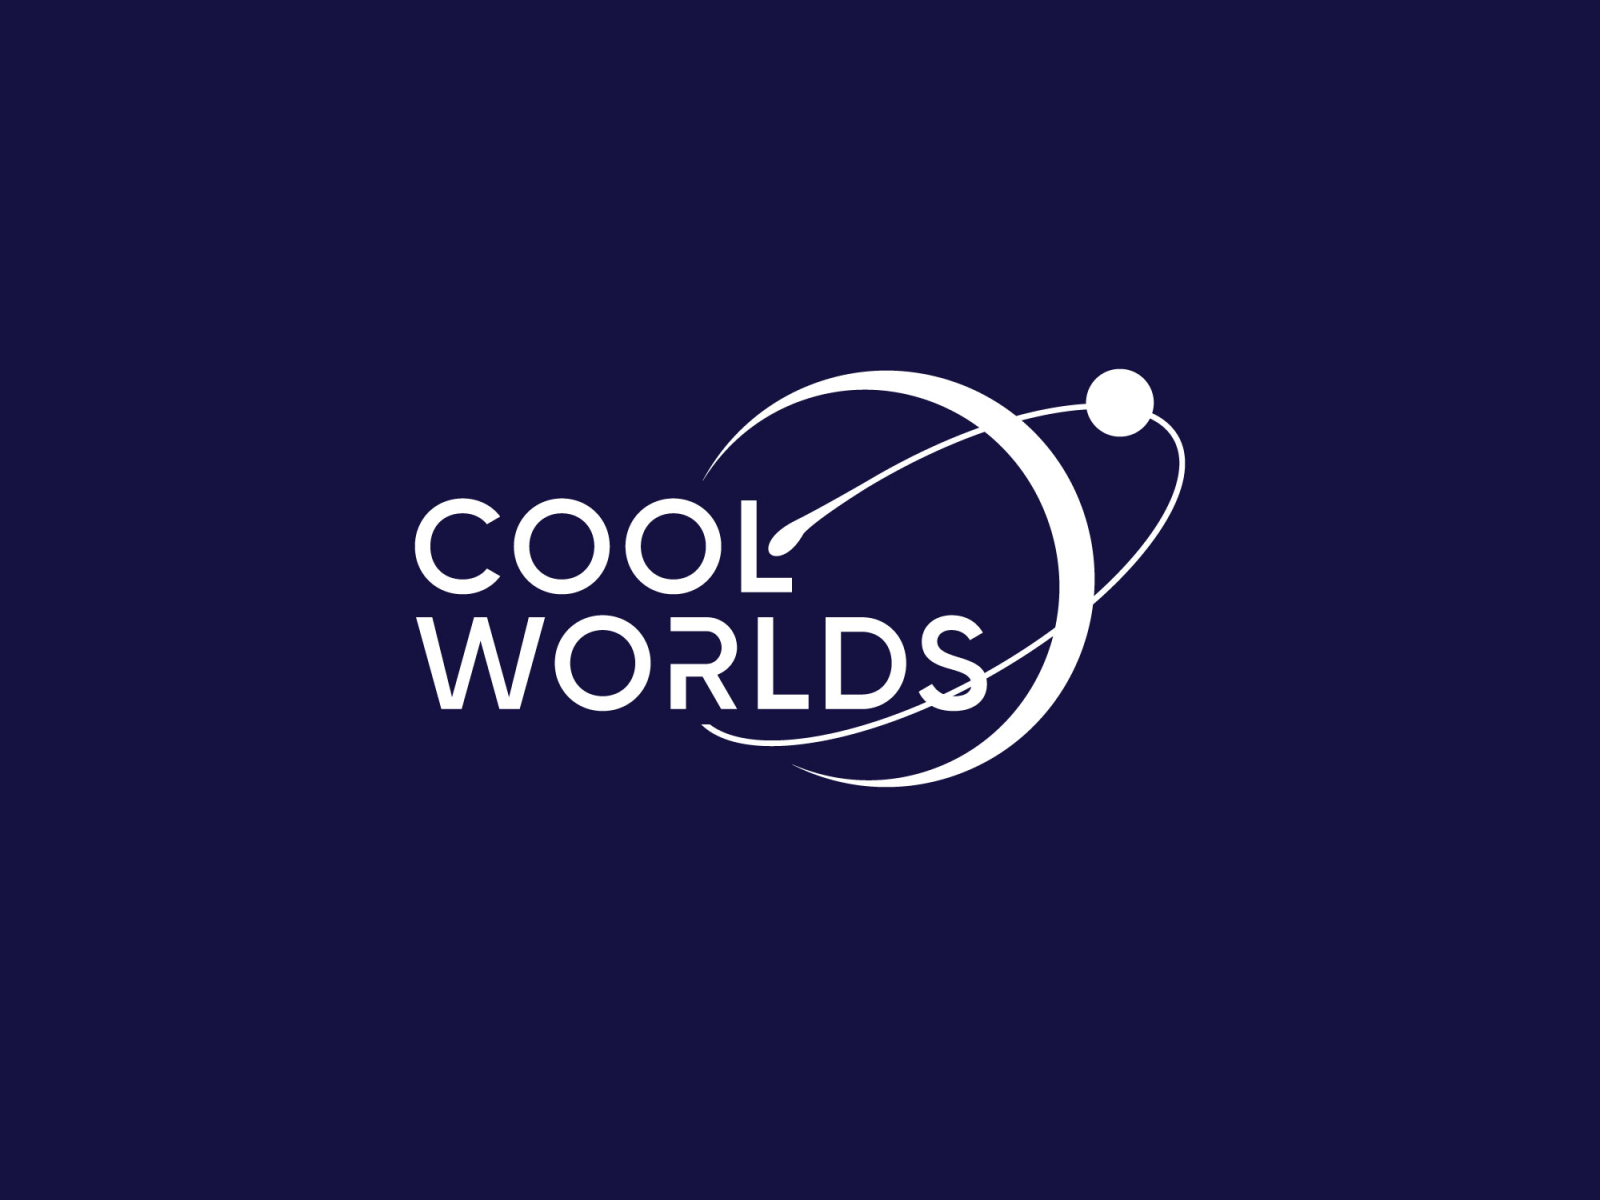 Cool Worlds By Md Naṣir On Dribbble